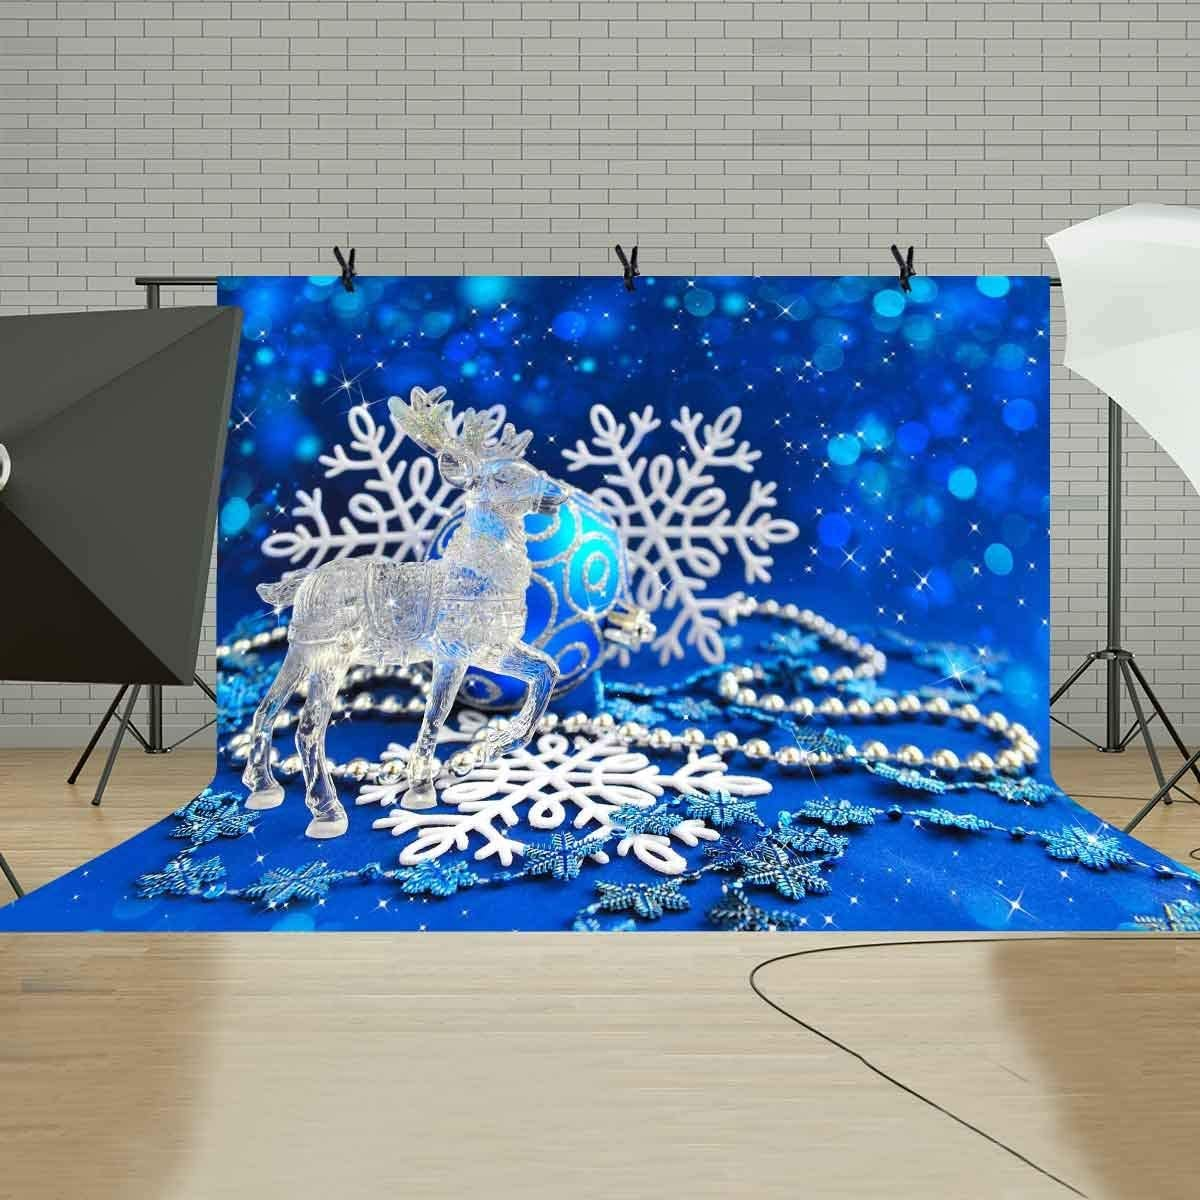 8x8FT Vinyl Wall Photography Backdrop,Abstract,Black White Surreal Art Background for Baby Birthday Party Wedding Graduation Home Decoration